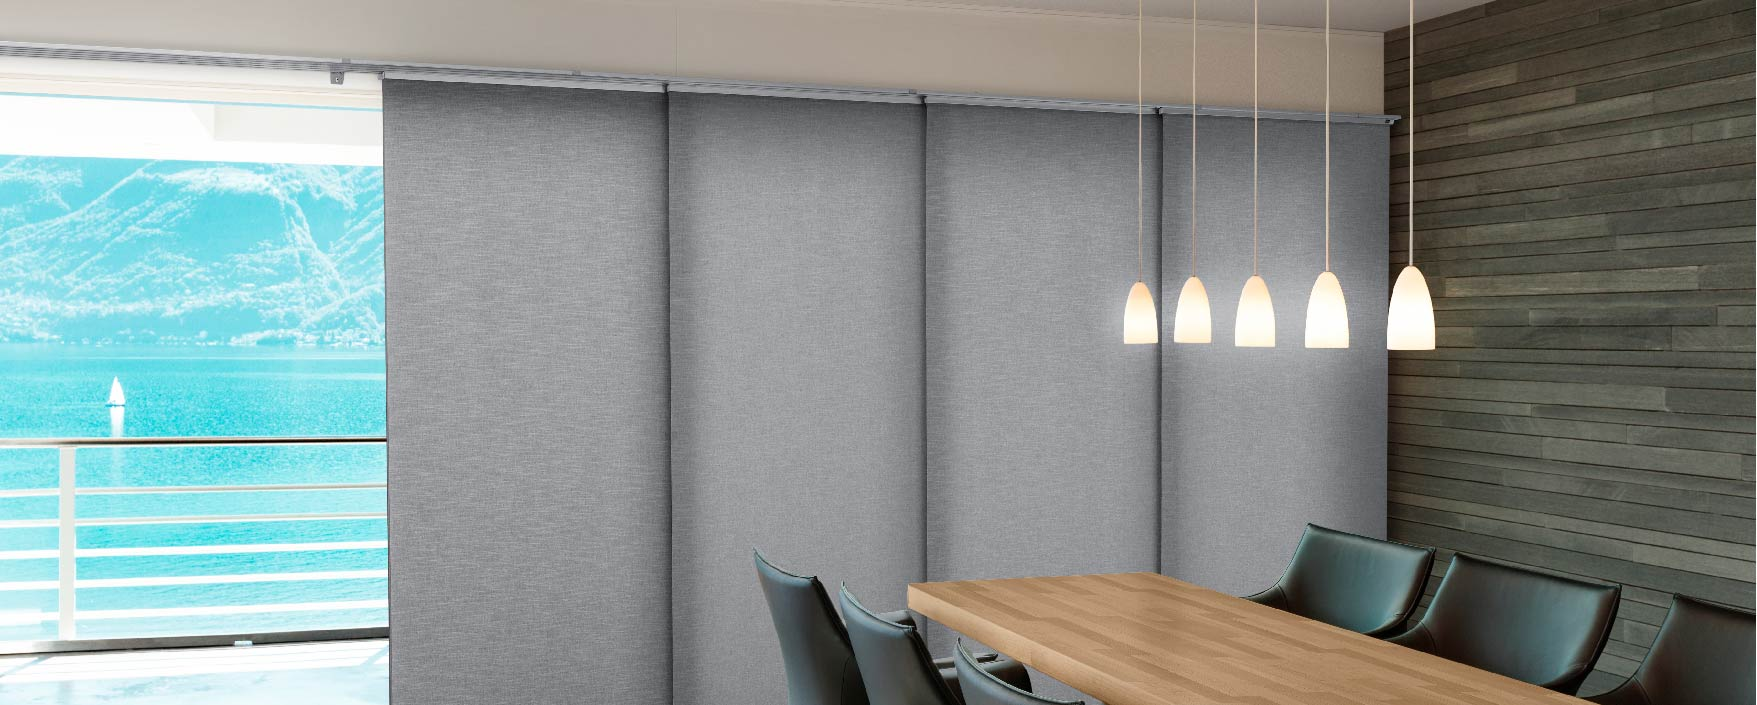 Panel Blinds Panel Glide Blinds Luxaflex